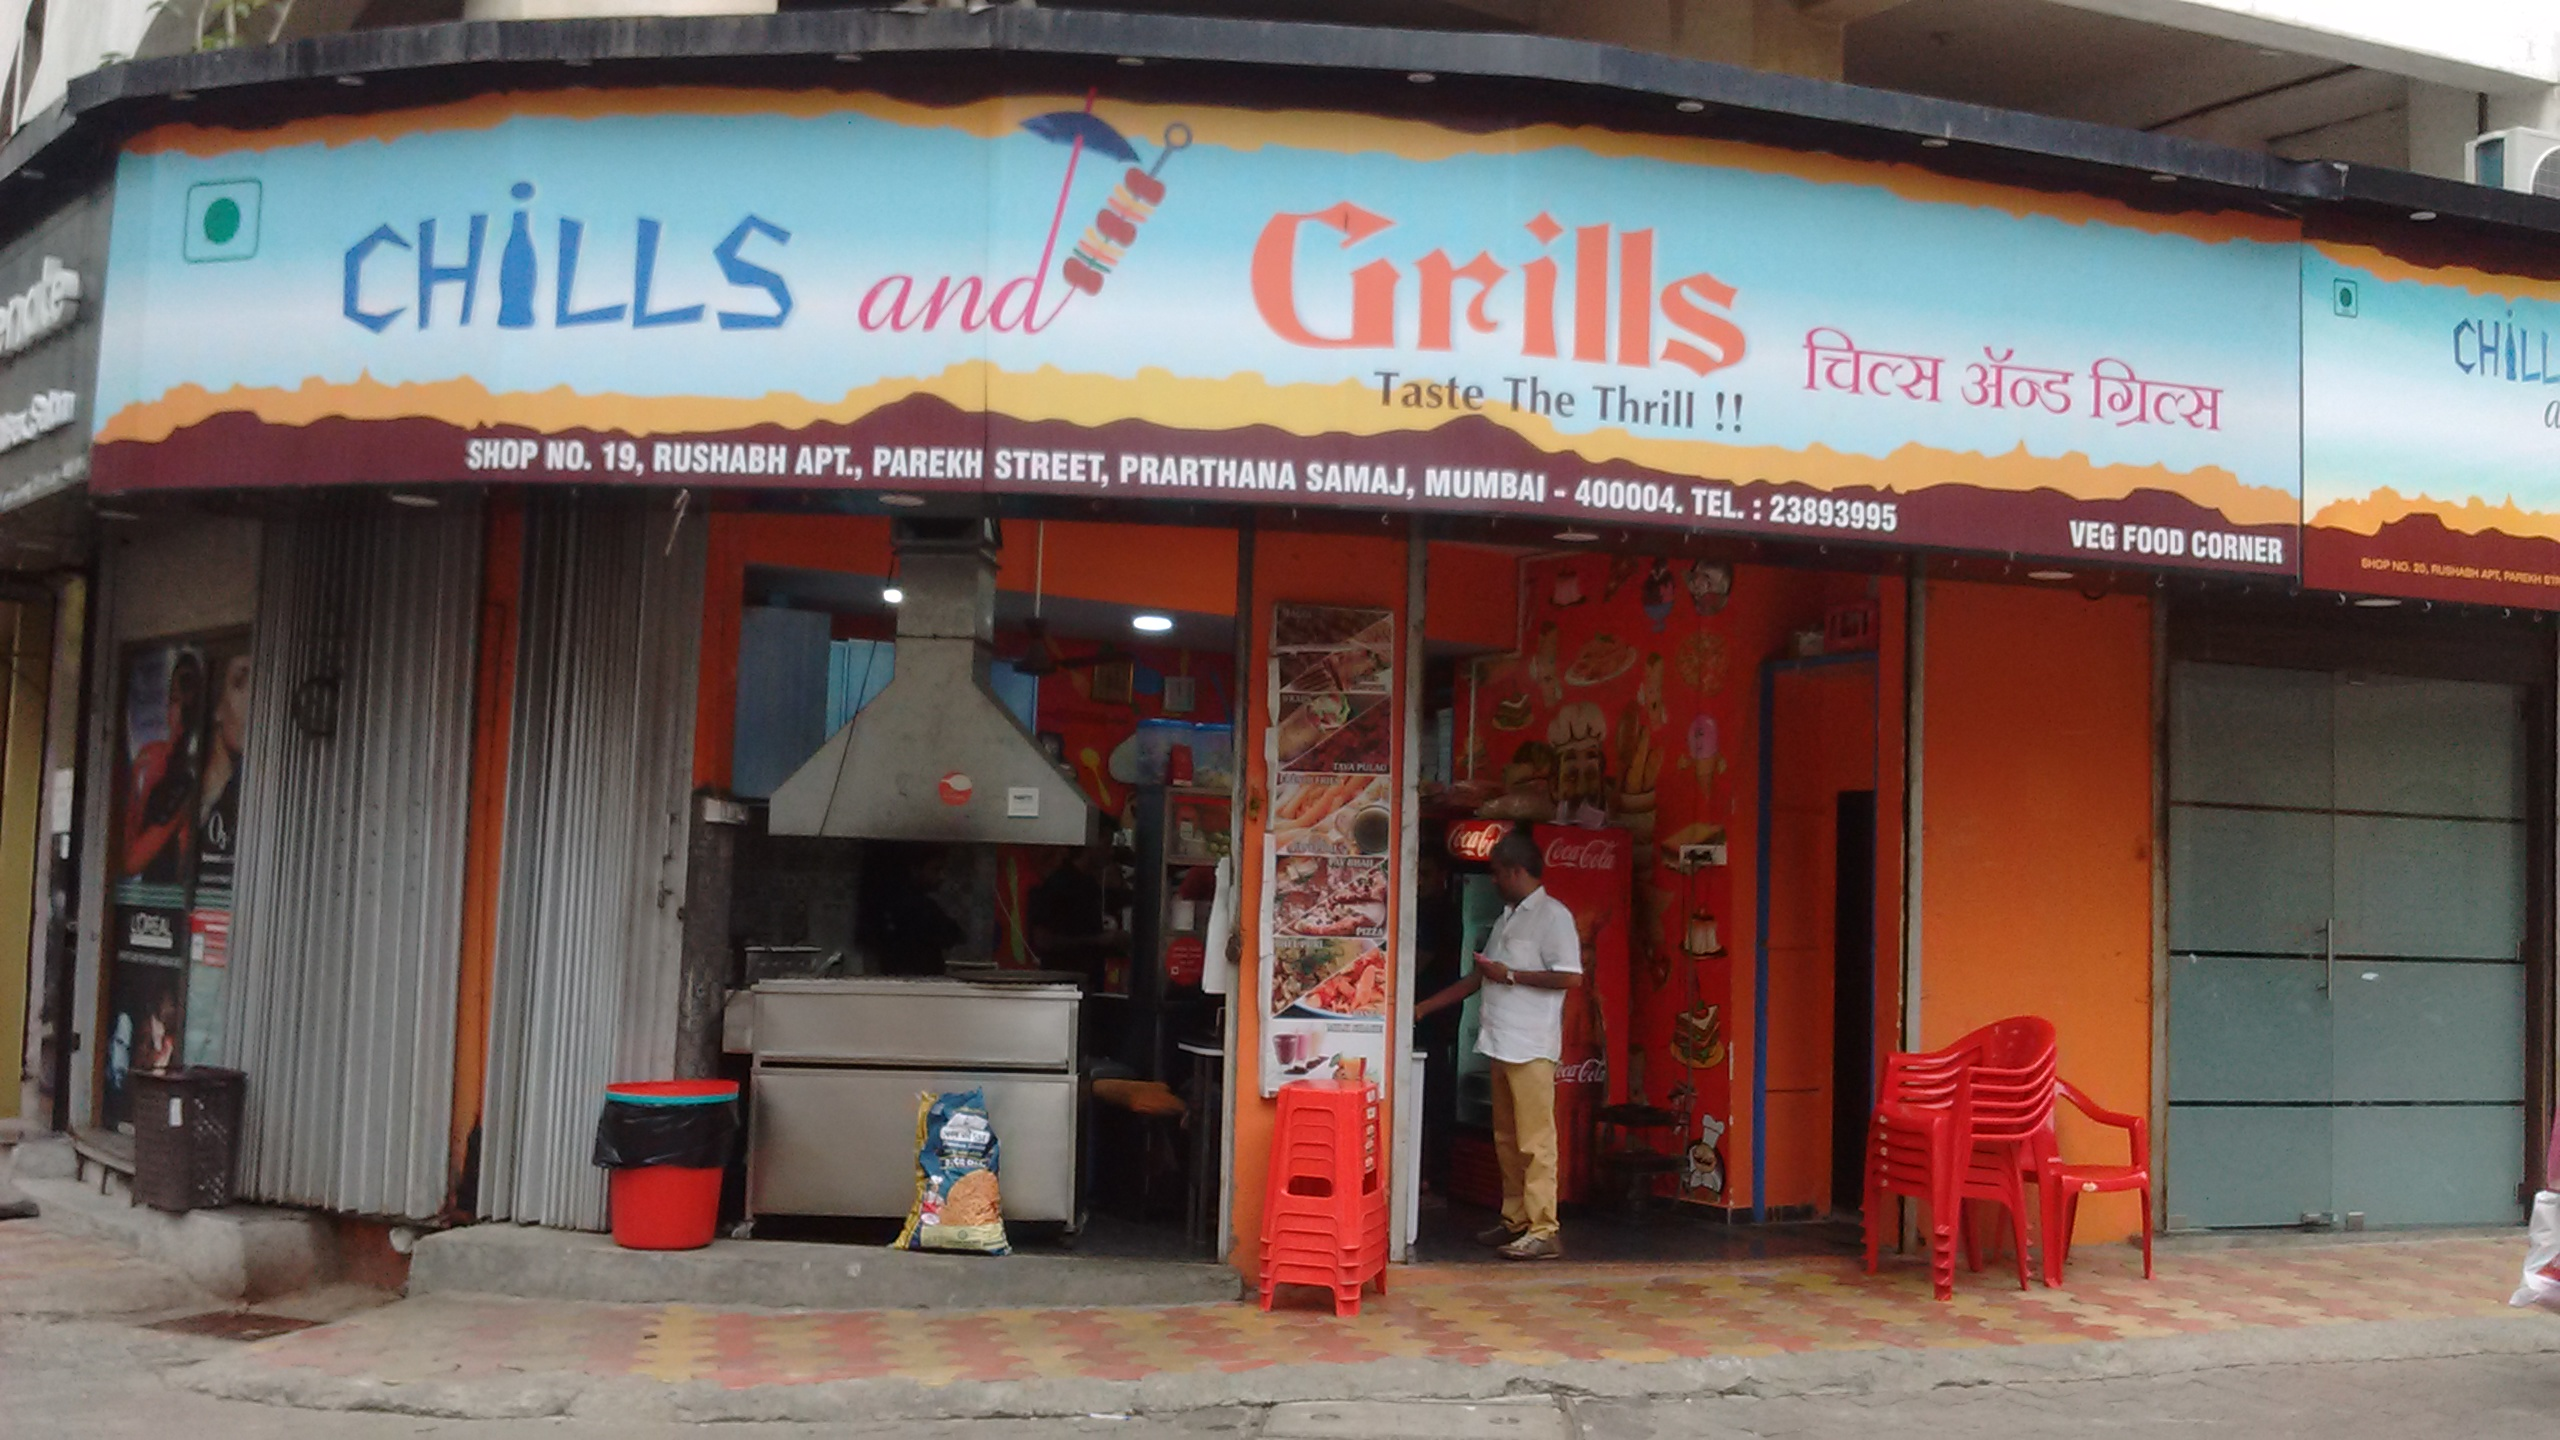 Chills and Grills is basically a mini resturant with decent sitting arrangements for a small group of friends